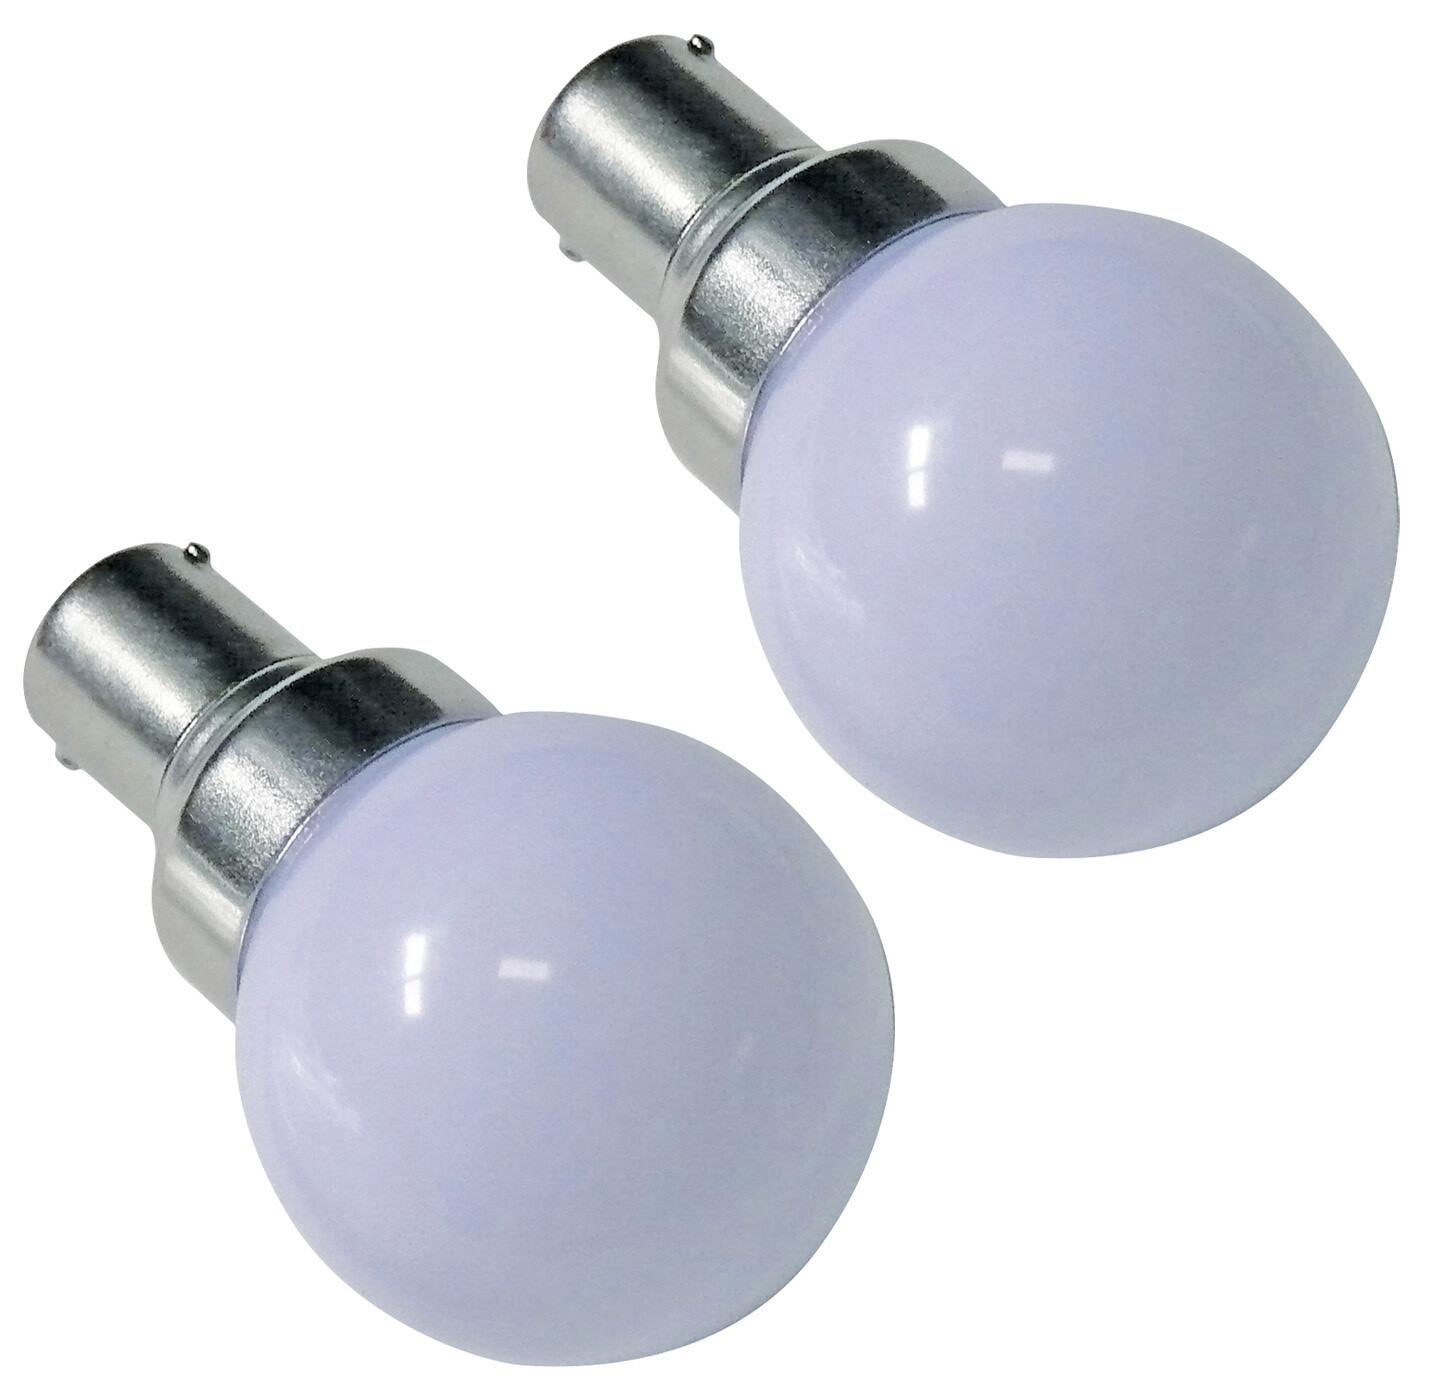 Vanity LED Bulb Replacement for 20-99. Bright White